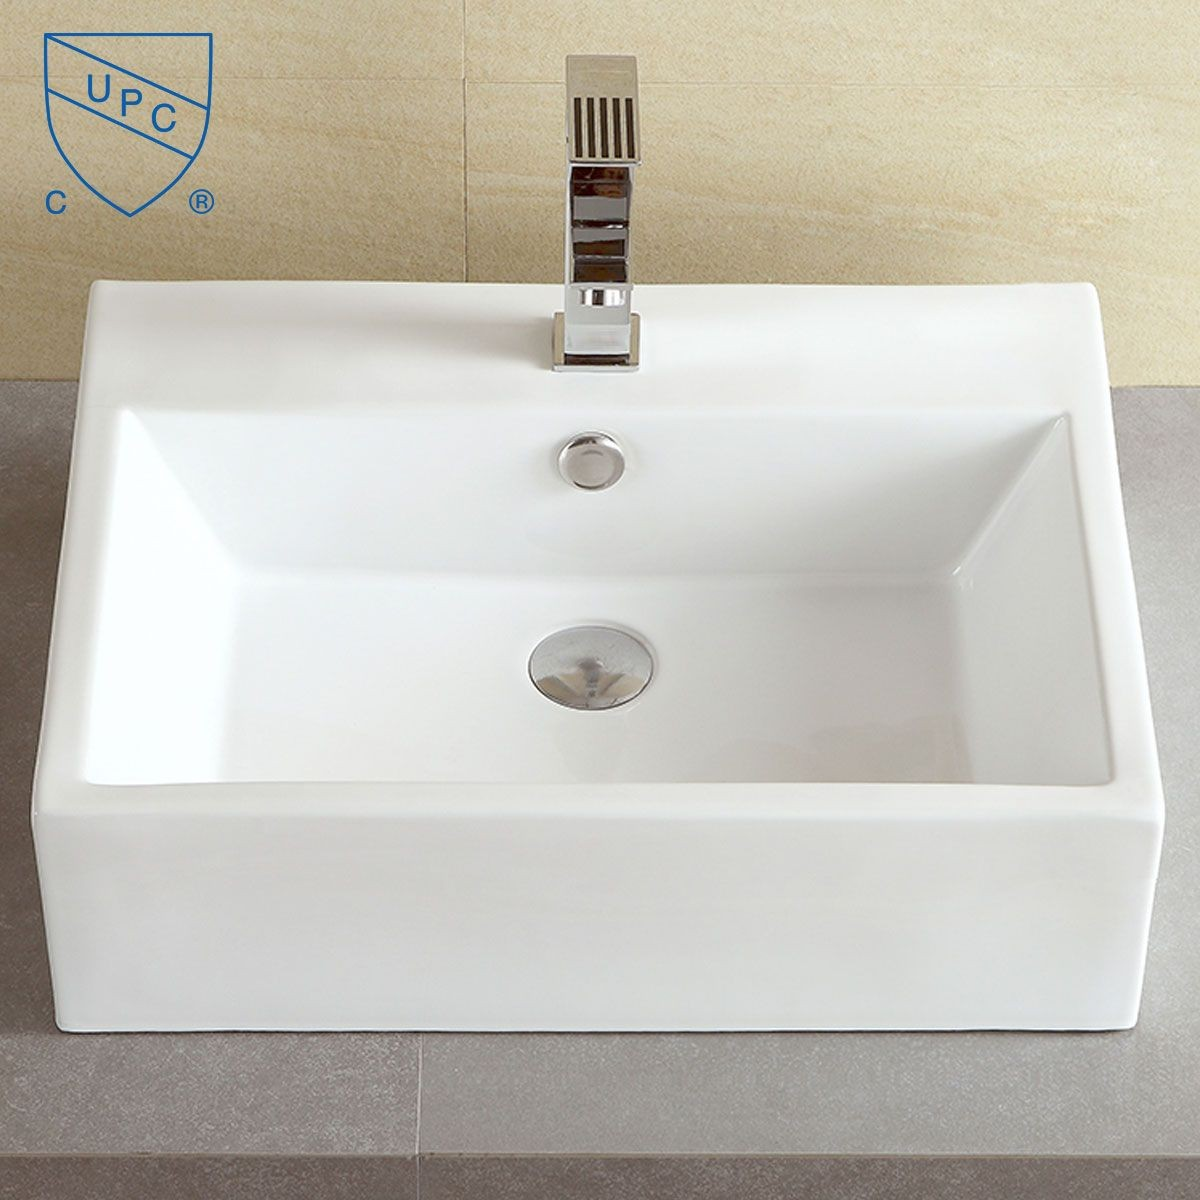 Decoraport White Rectangle Ceramic Above Counter Basin Vessel Vanity Sink (CL-1094)